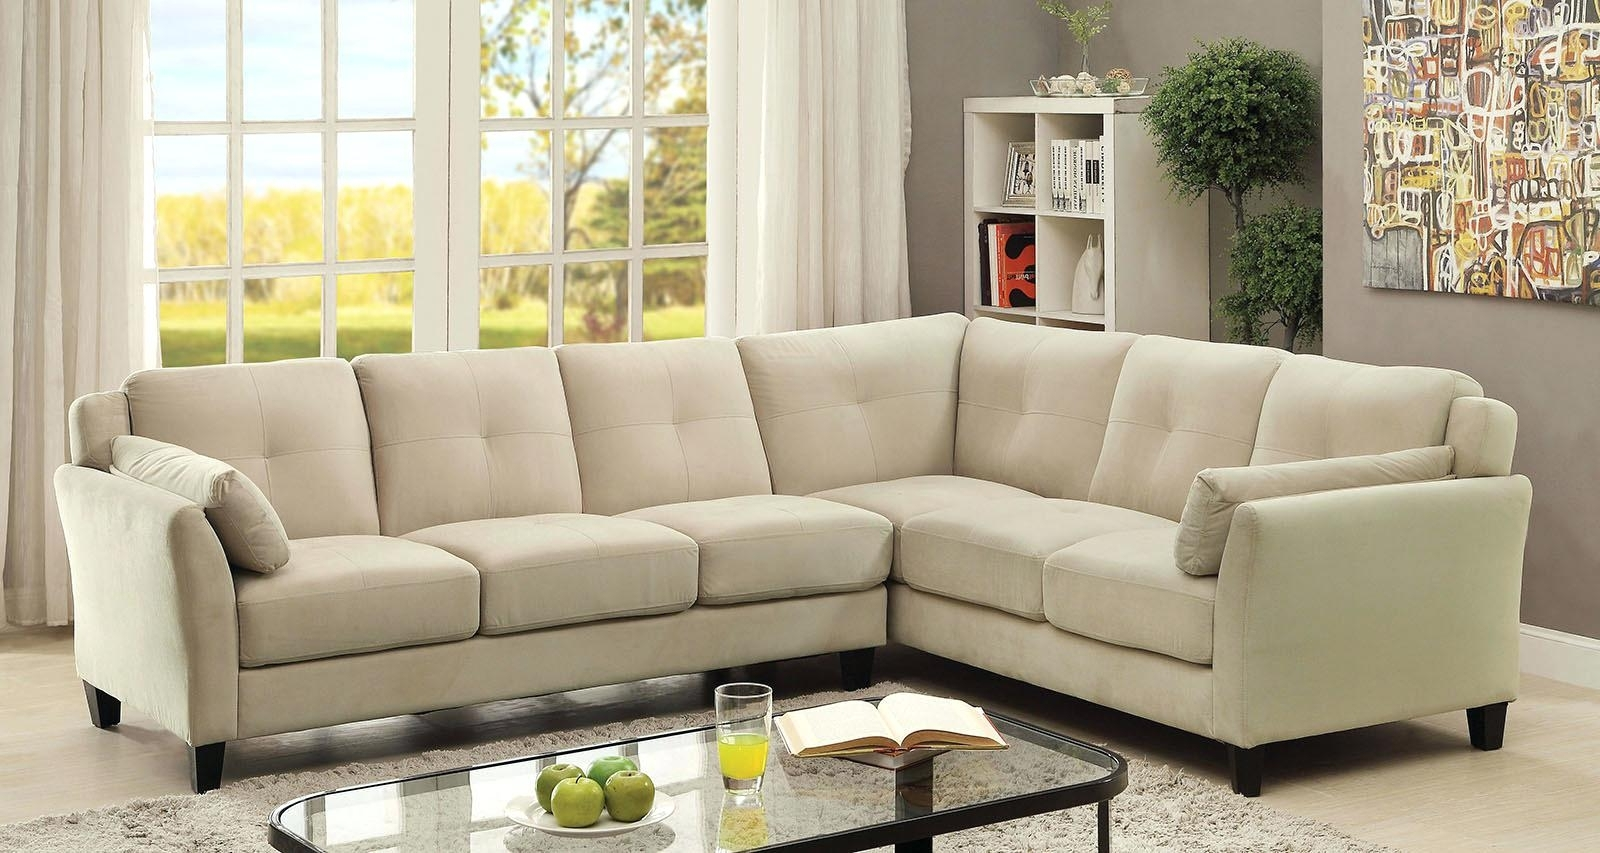 Sectional Sofa Sale Sa Couches For Near Me Liquidation Toronto Inside Current Canada Sale Sectional Sofas (View 17 of 20)